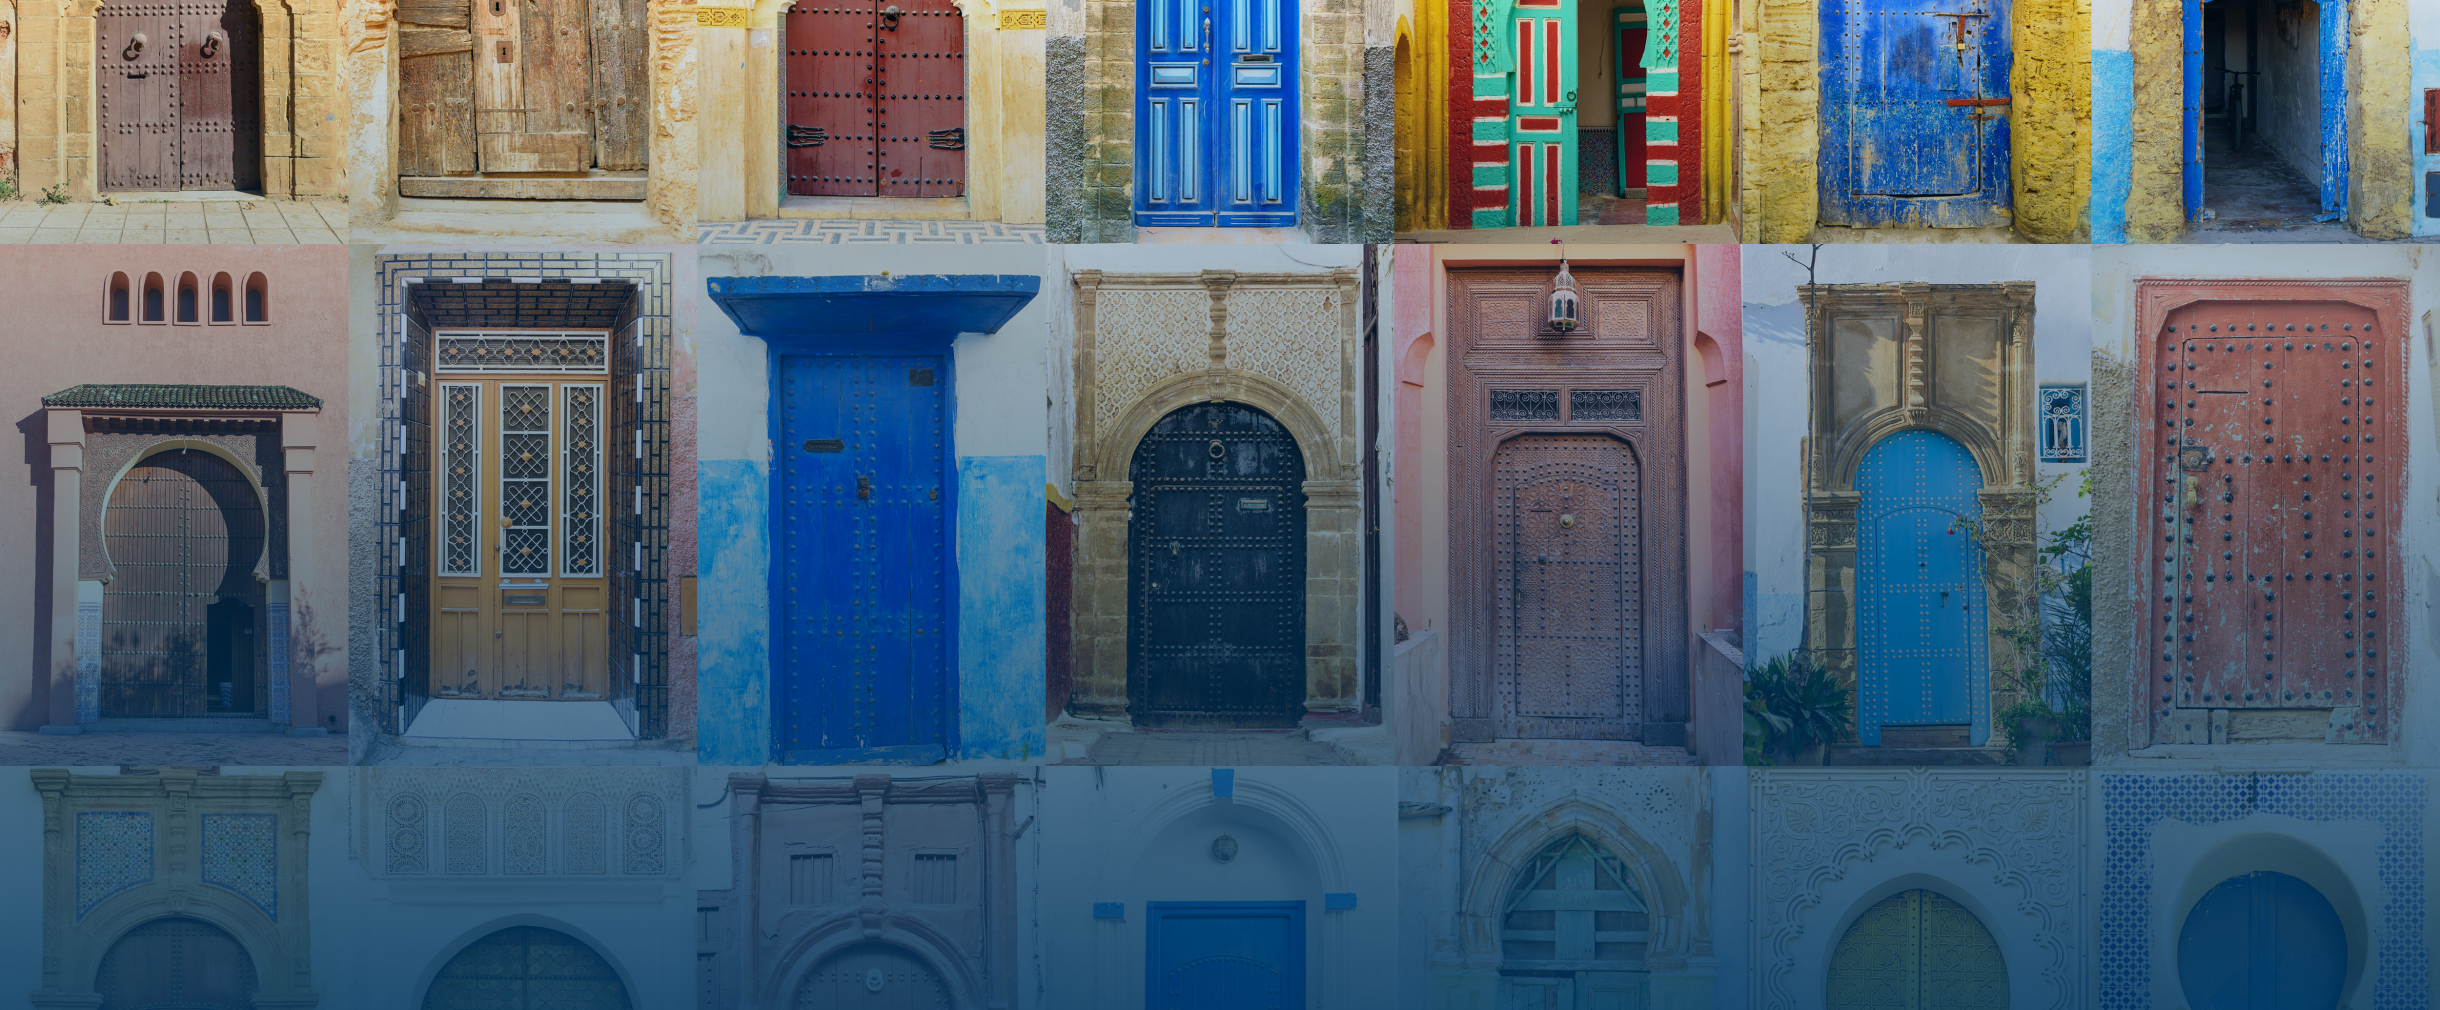 2019 MENA Forum Photo of Moroccan Doors